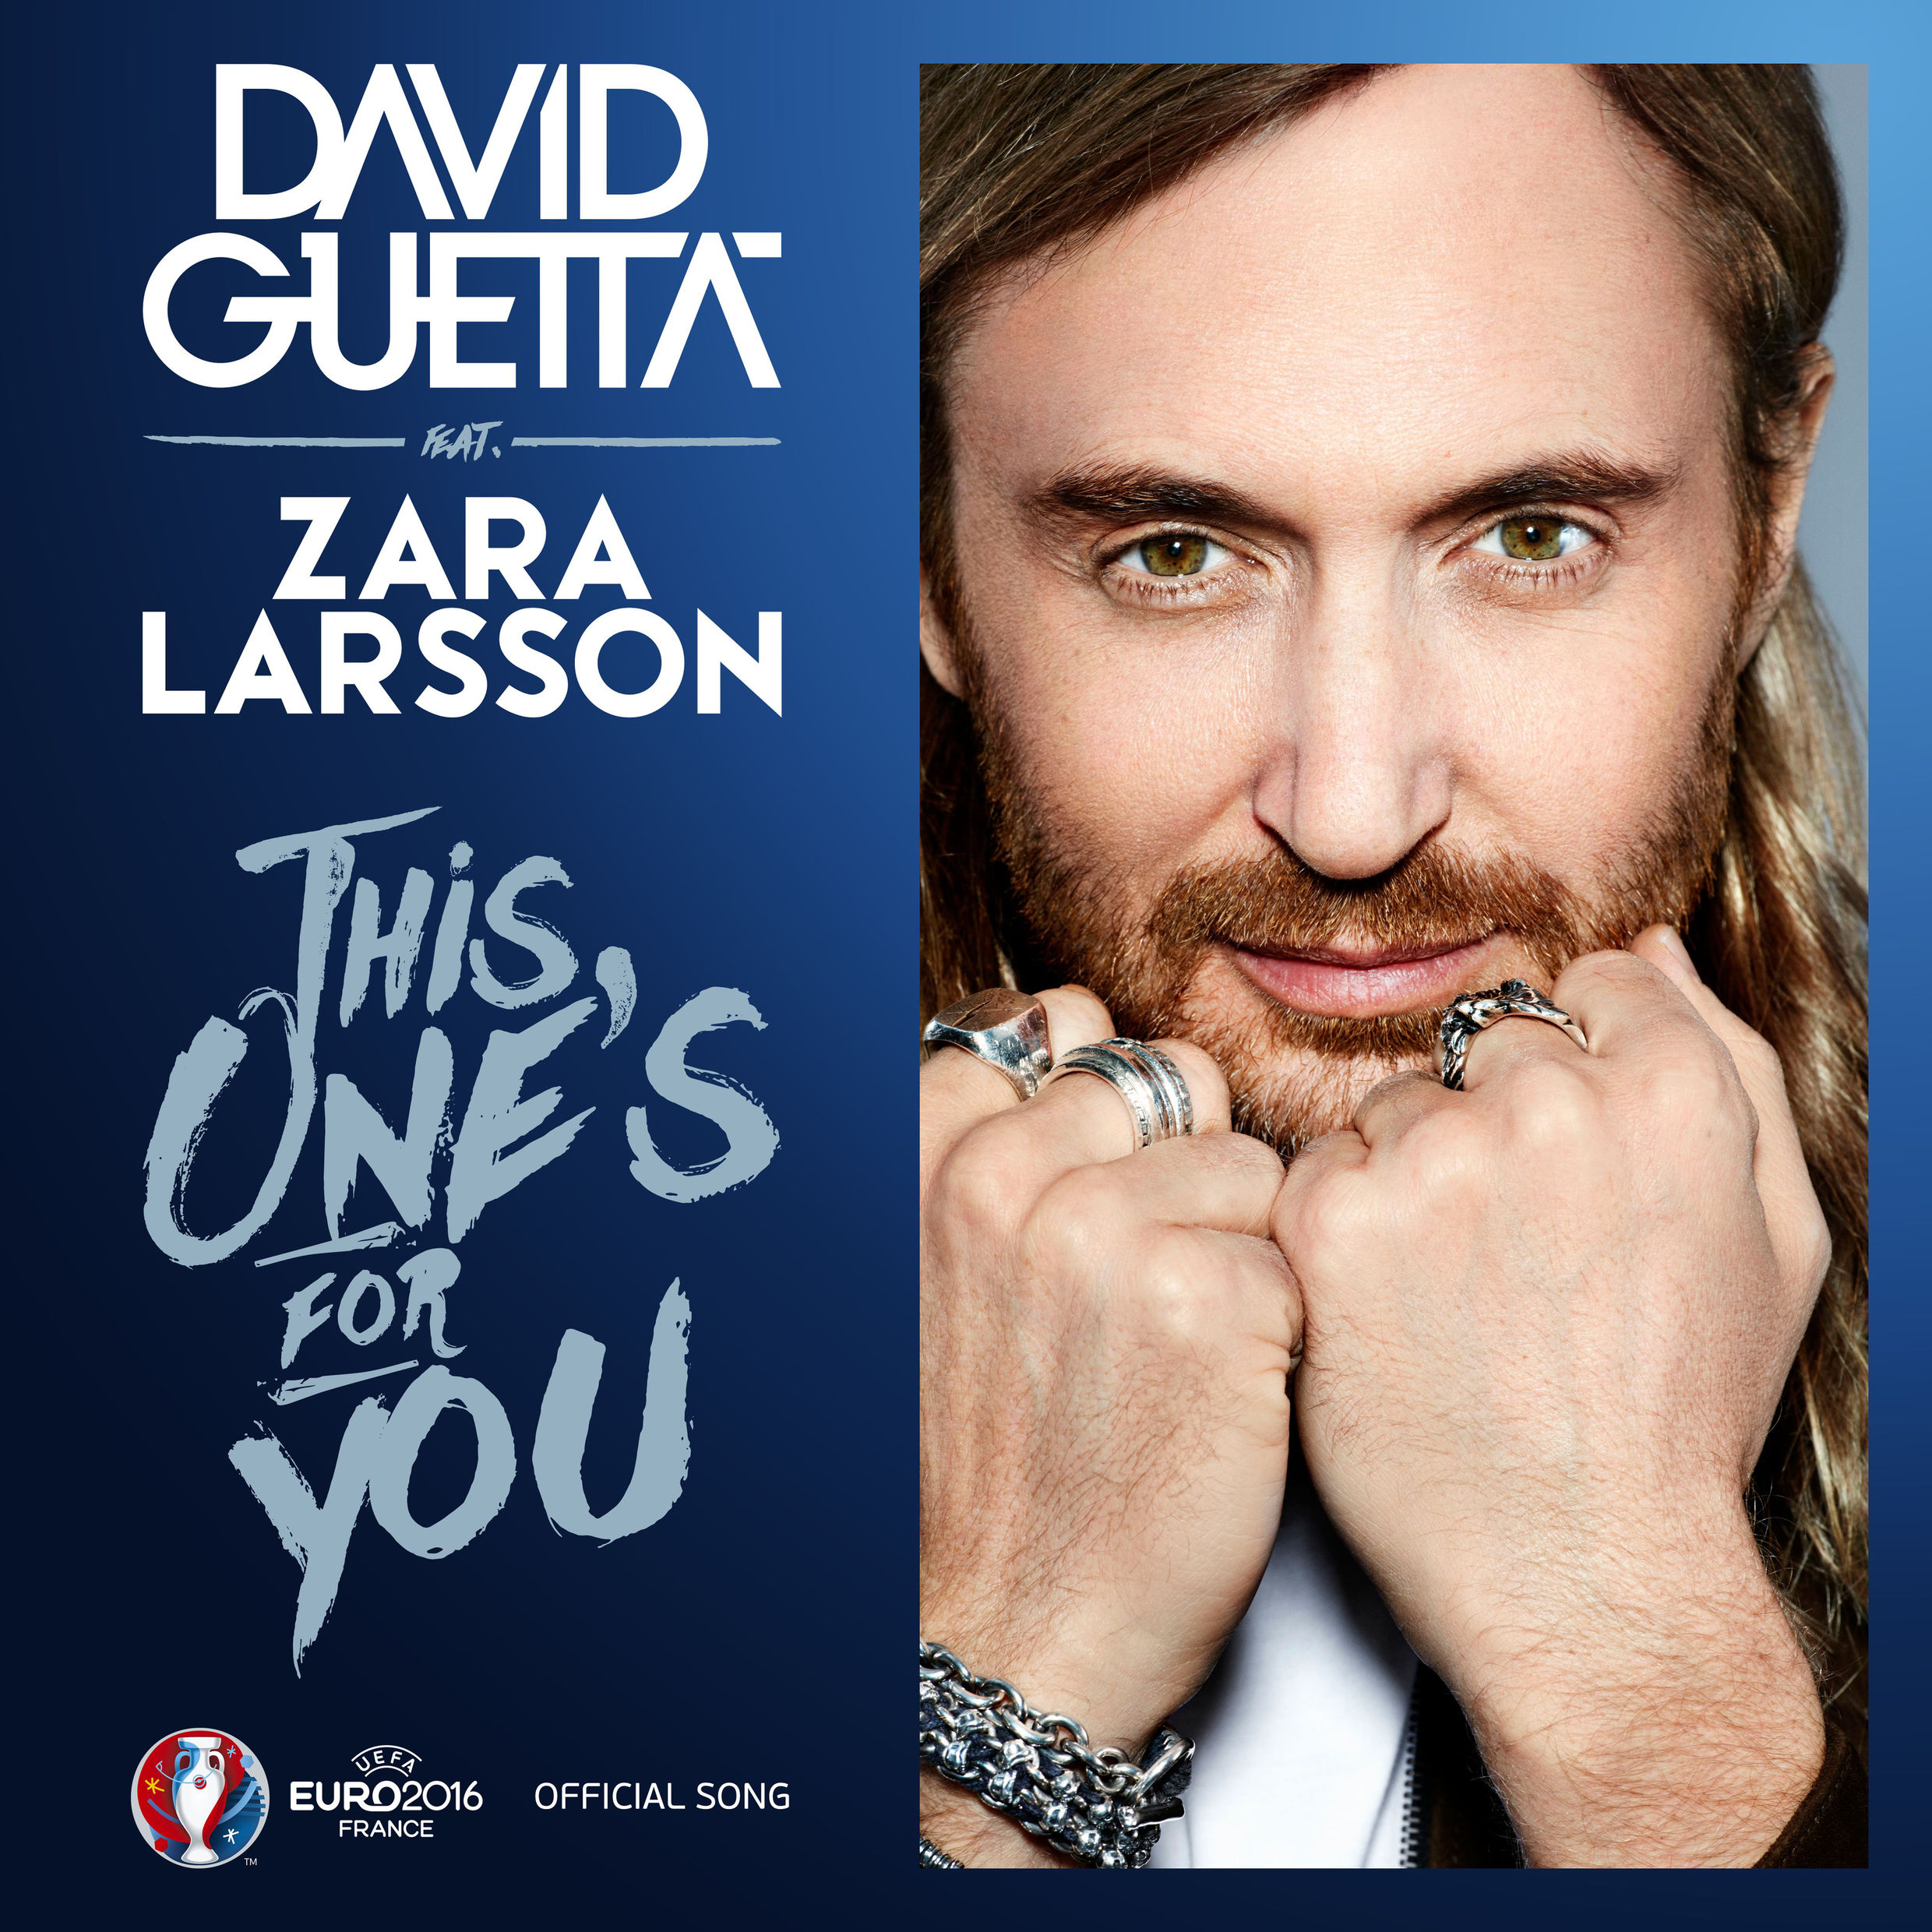 David-Guetta-This-Ones-For-You-2016-UEFA-2480x2480